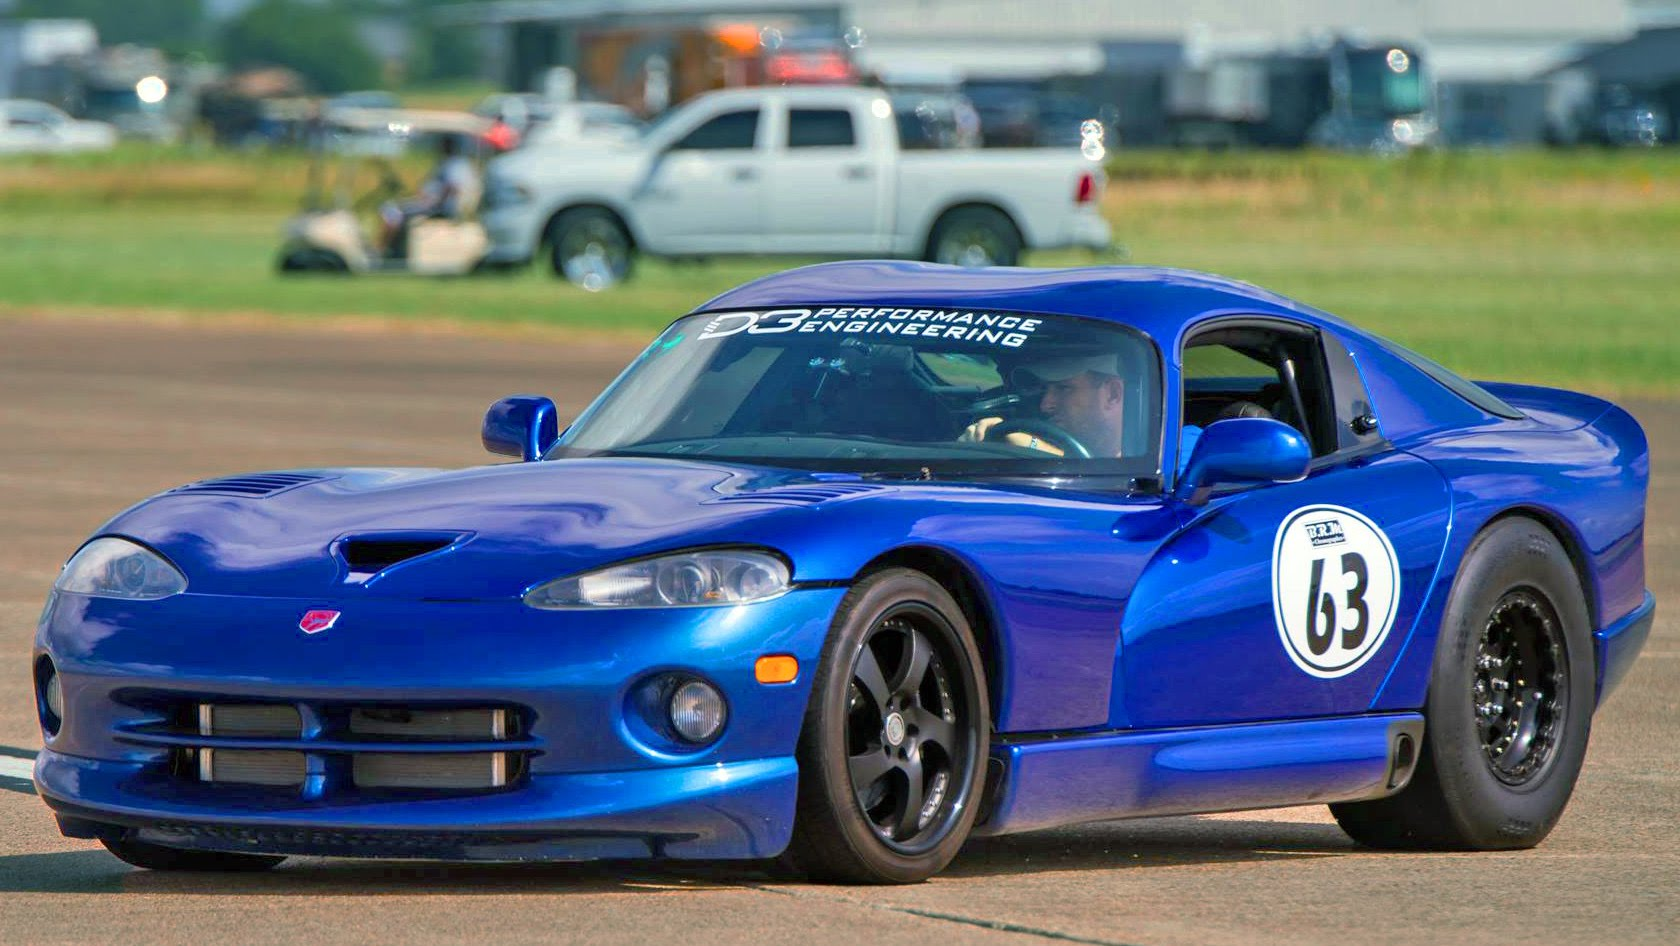 Twin Turbo Viper King of the Streets